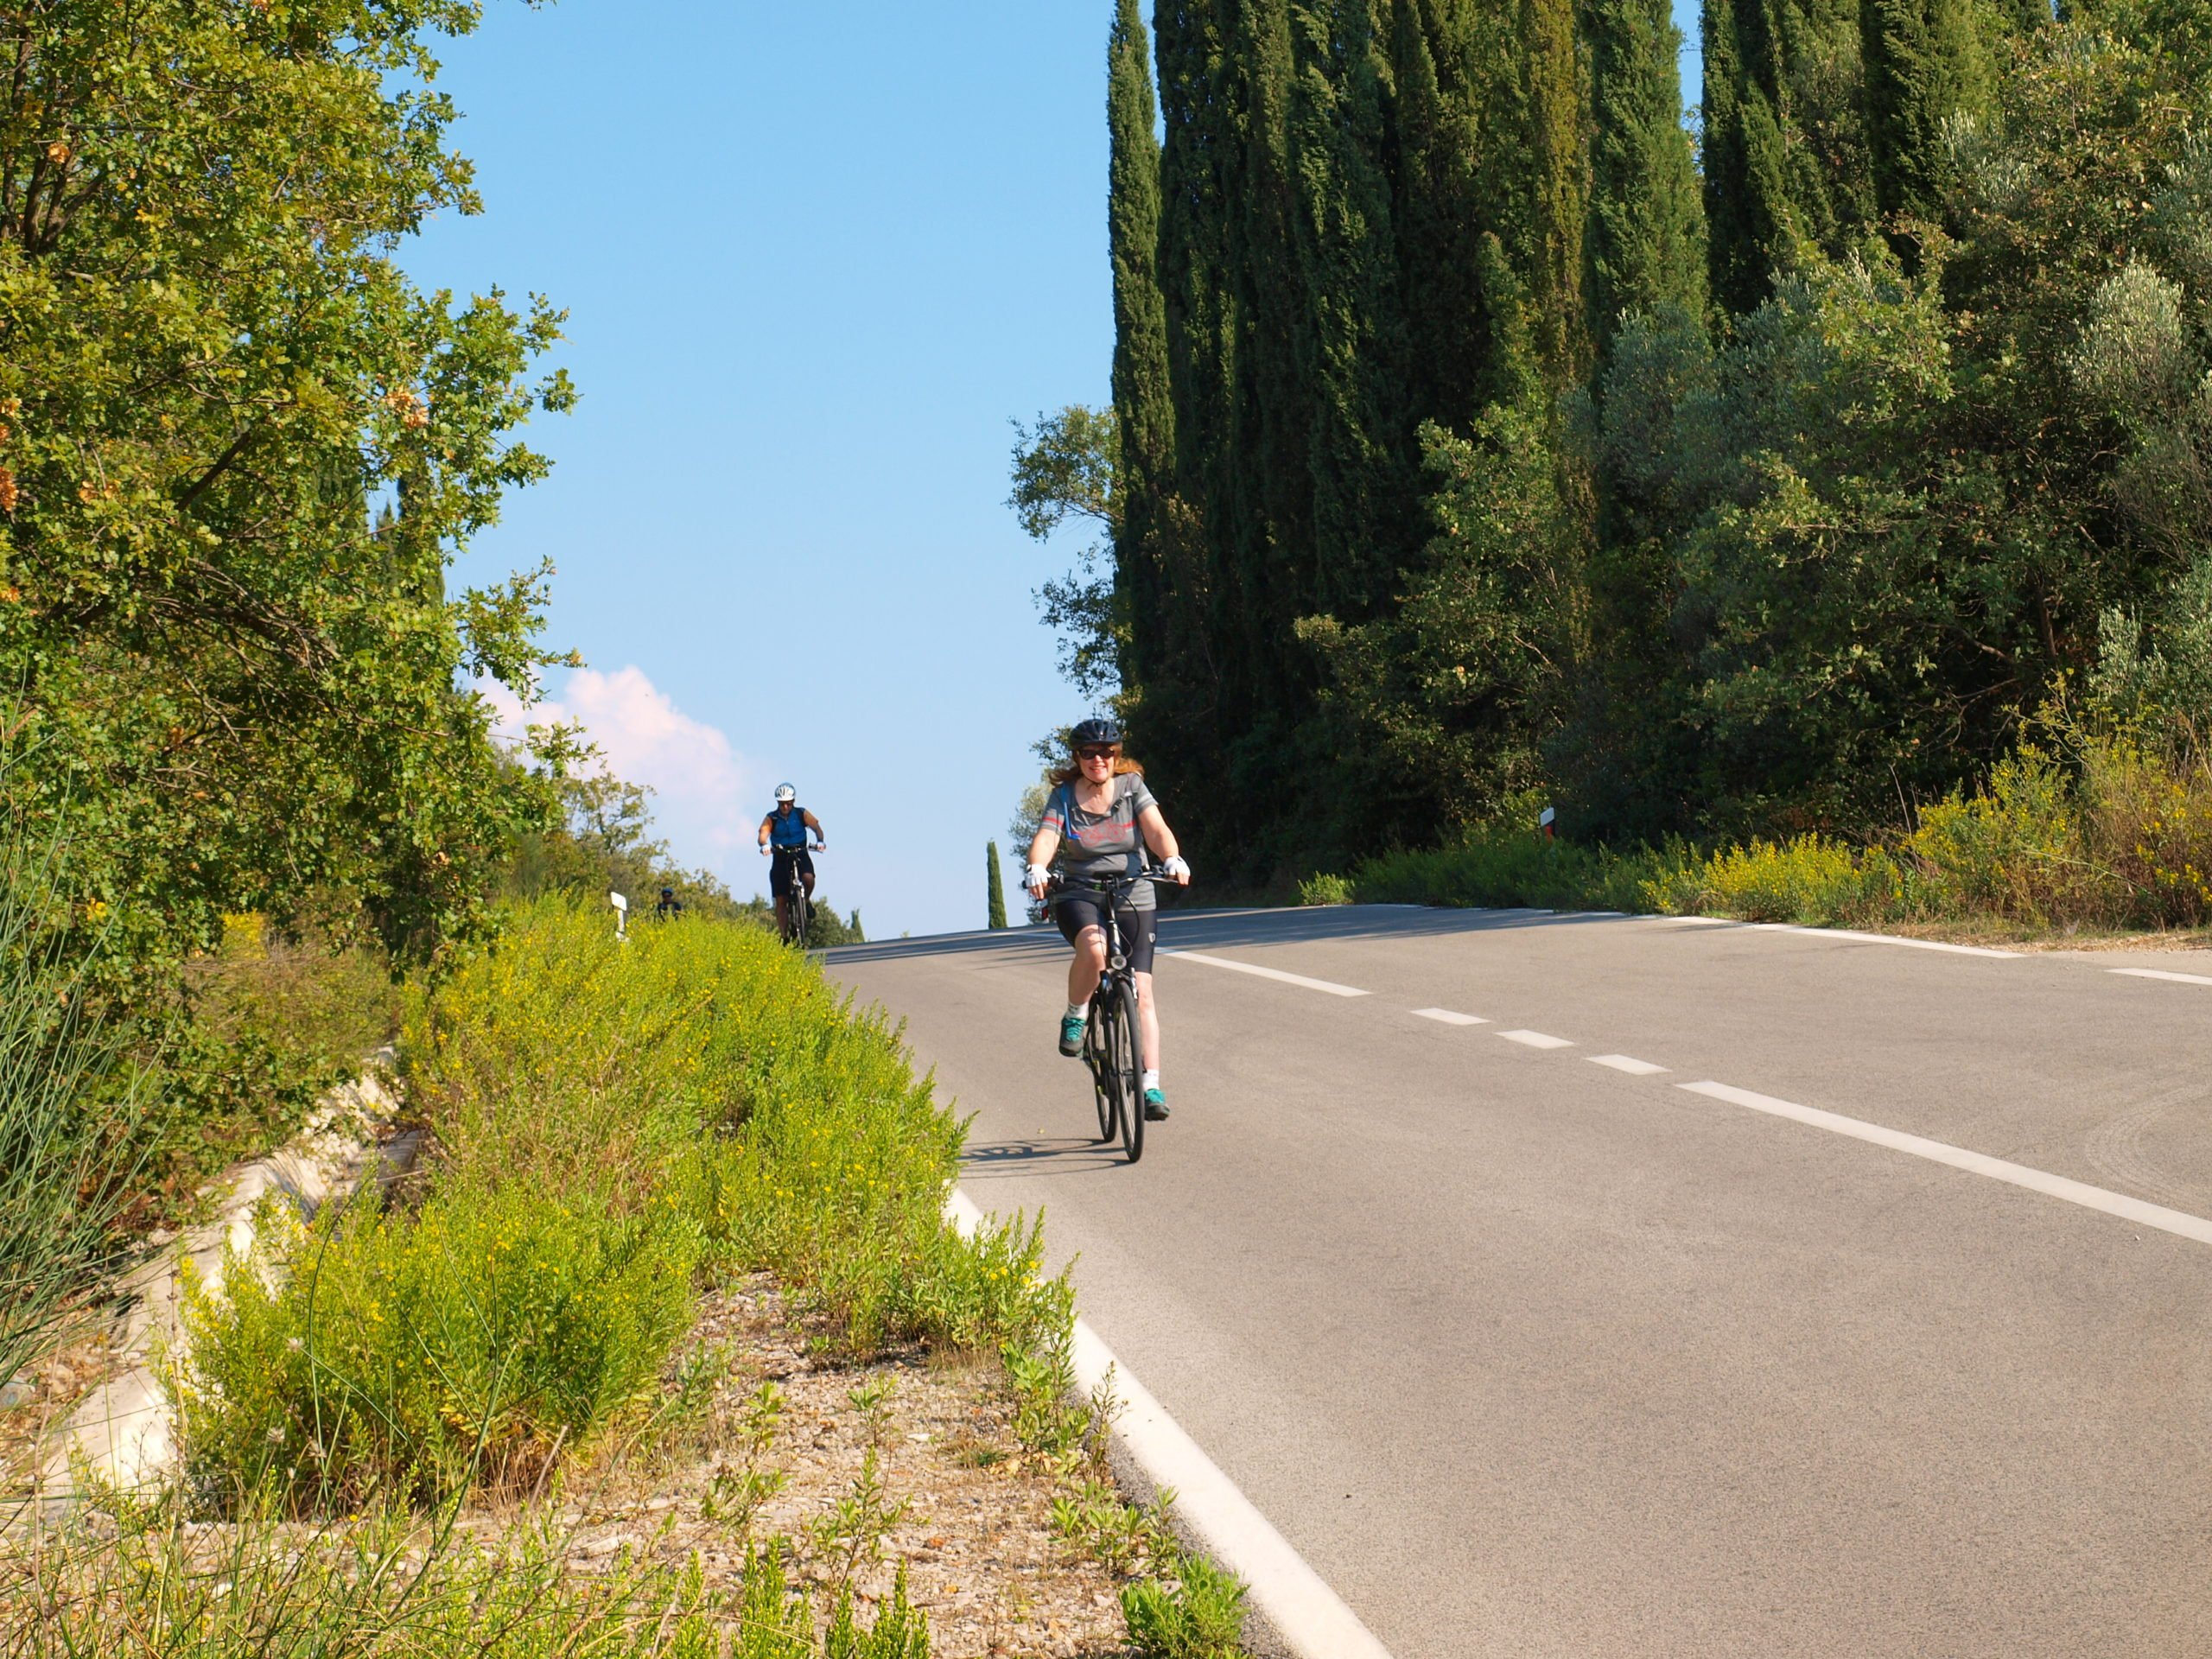 Enjoy A Full Day Of Biking On The Bike Trip At The Dubrovnik Riviera_40